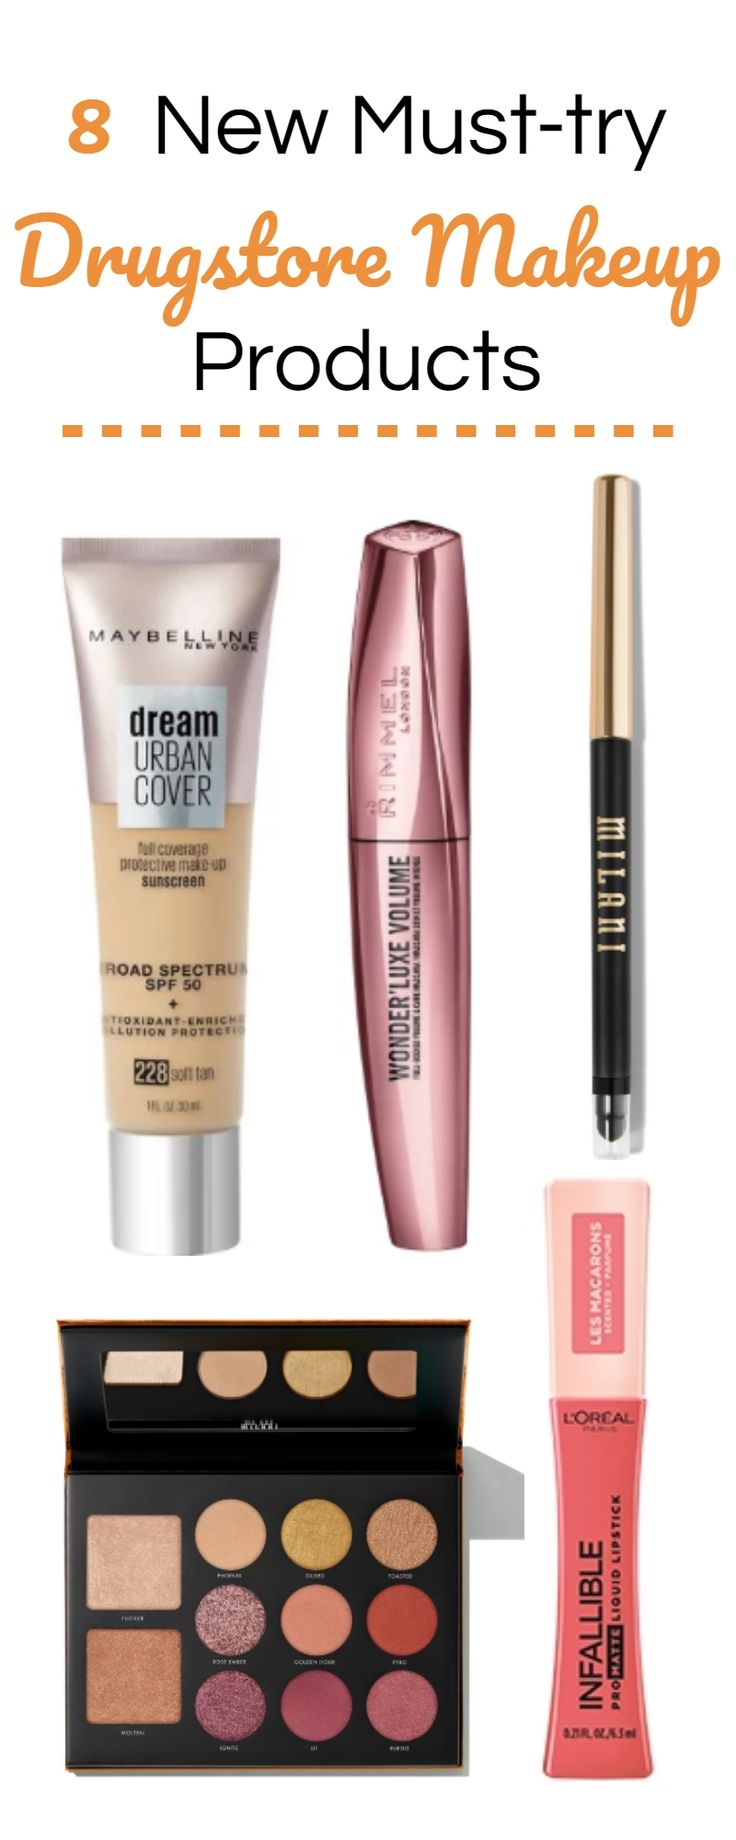 More new drugstore makeup is here! From Maybelline's new